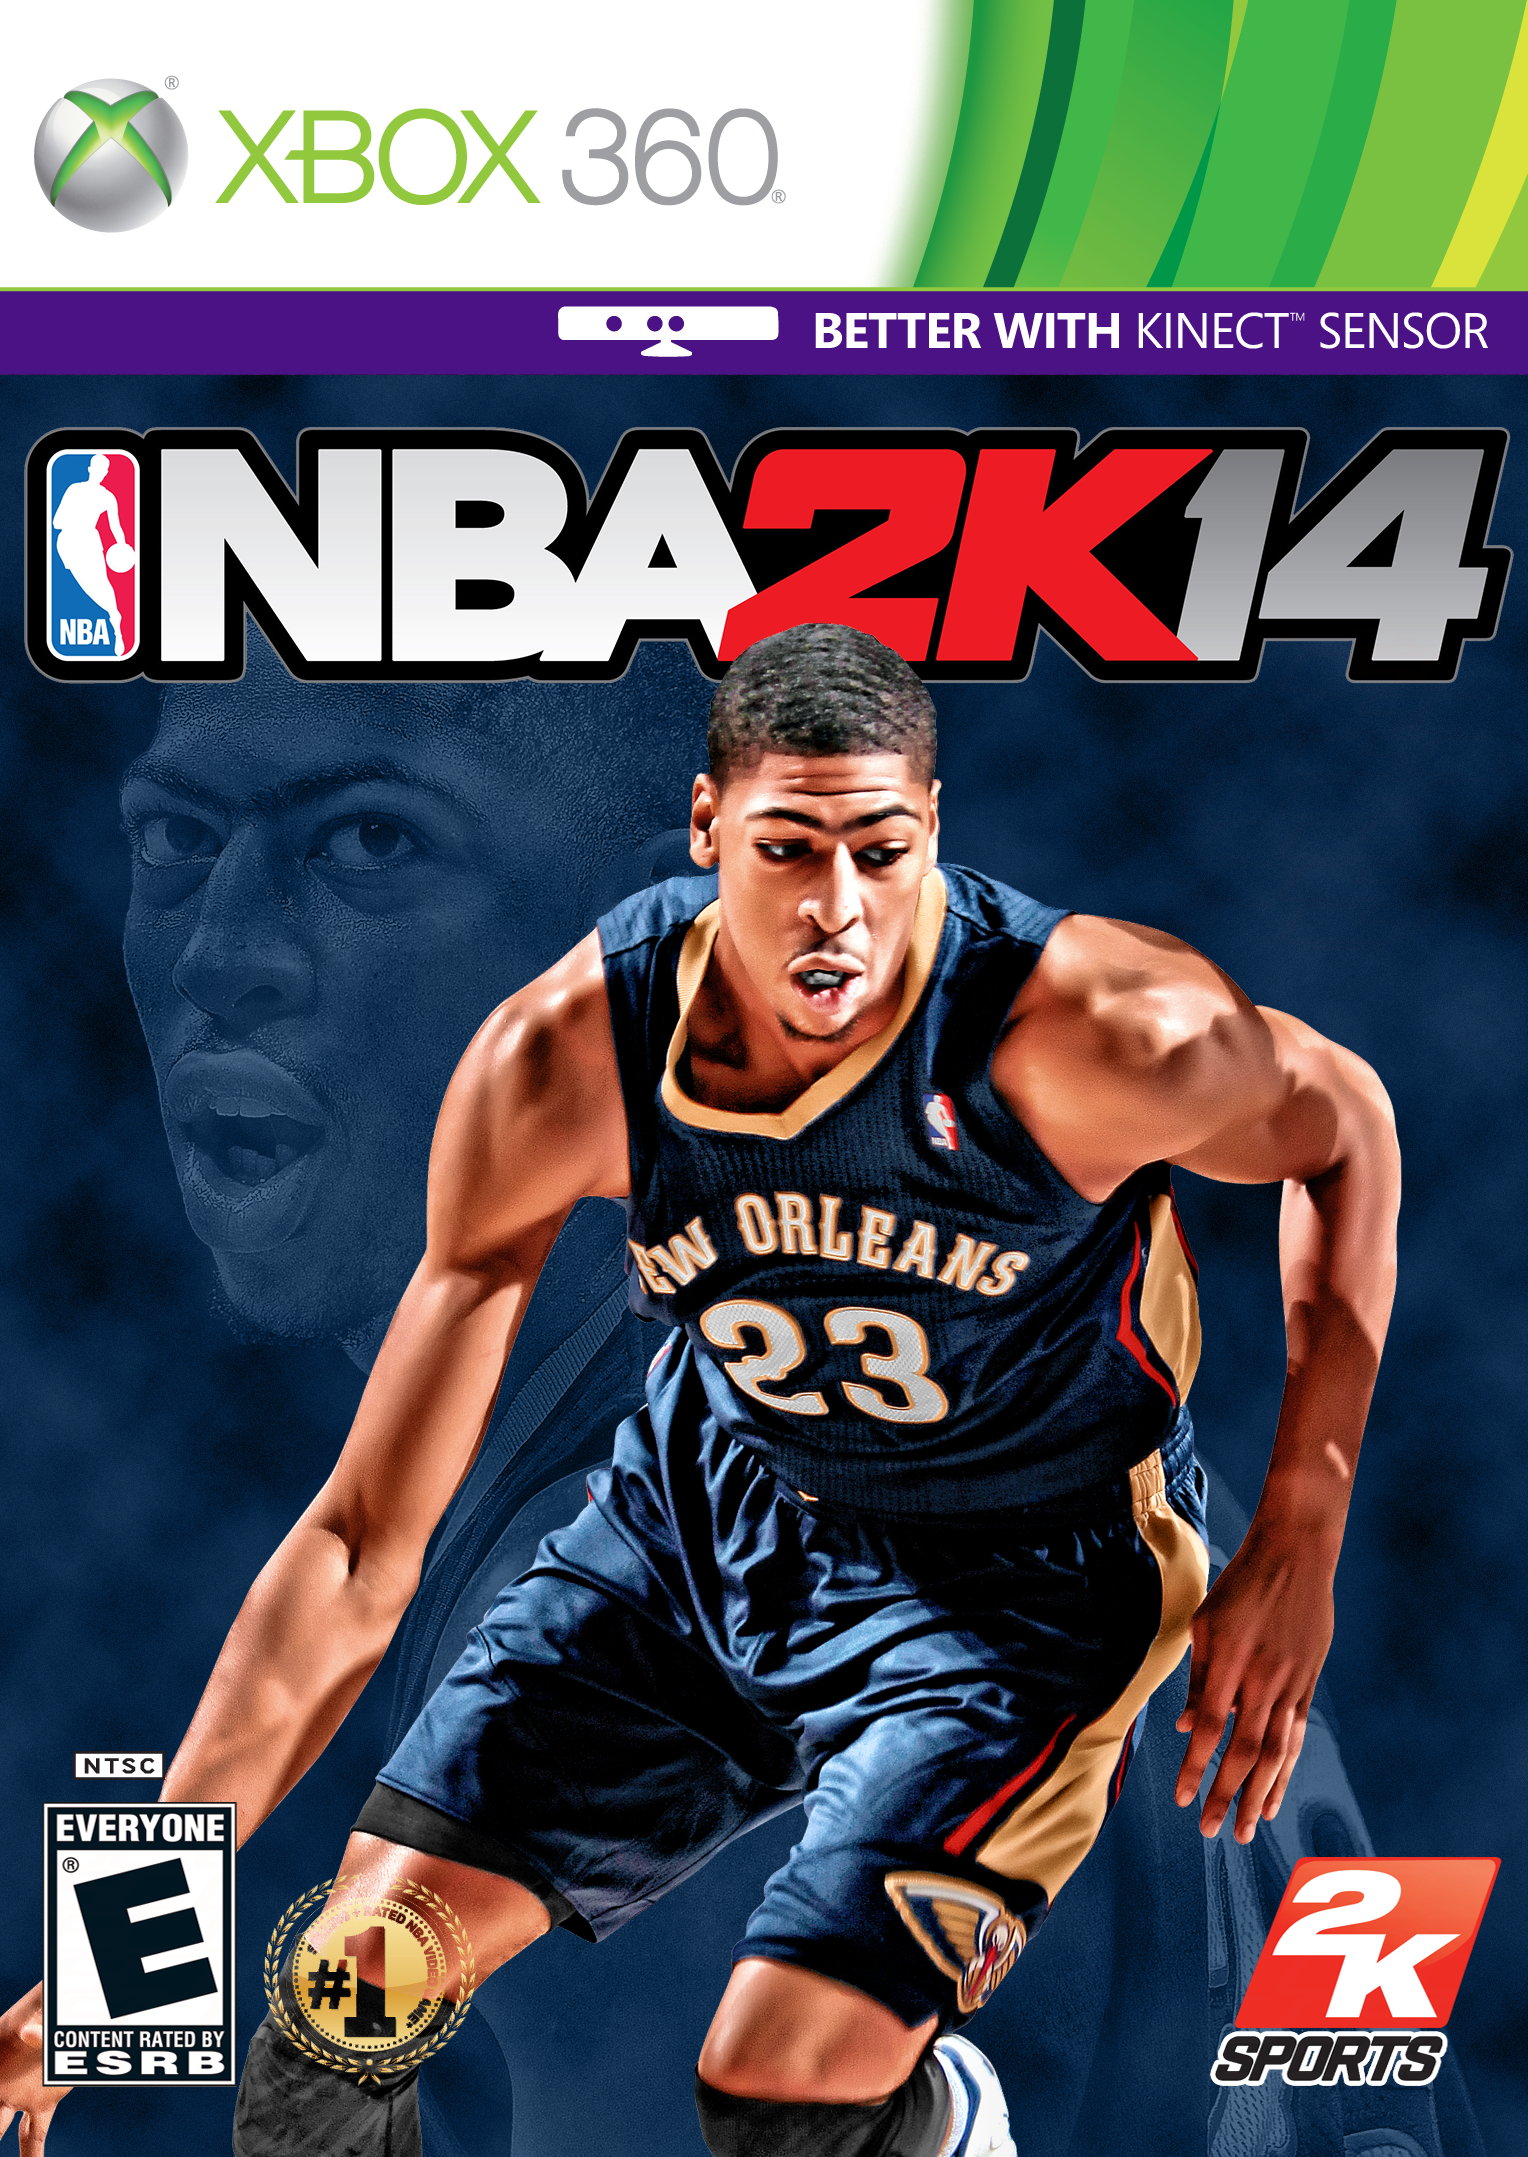 Pin Pictures Posts Tagged Nba 2k14 Ps4 Widescreen Background Wallpaper ... Nba 2k14 Custom Covers Xbox